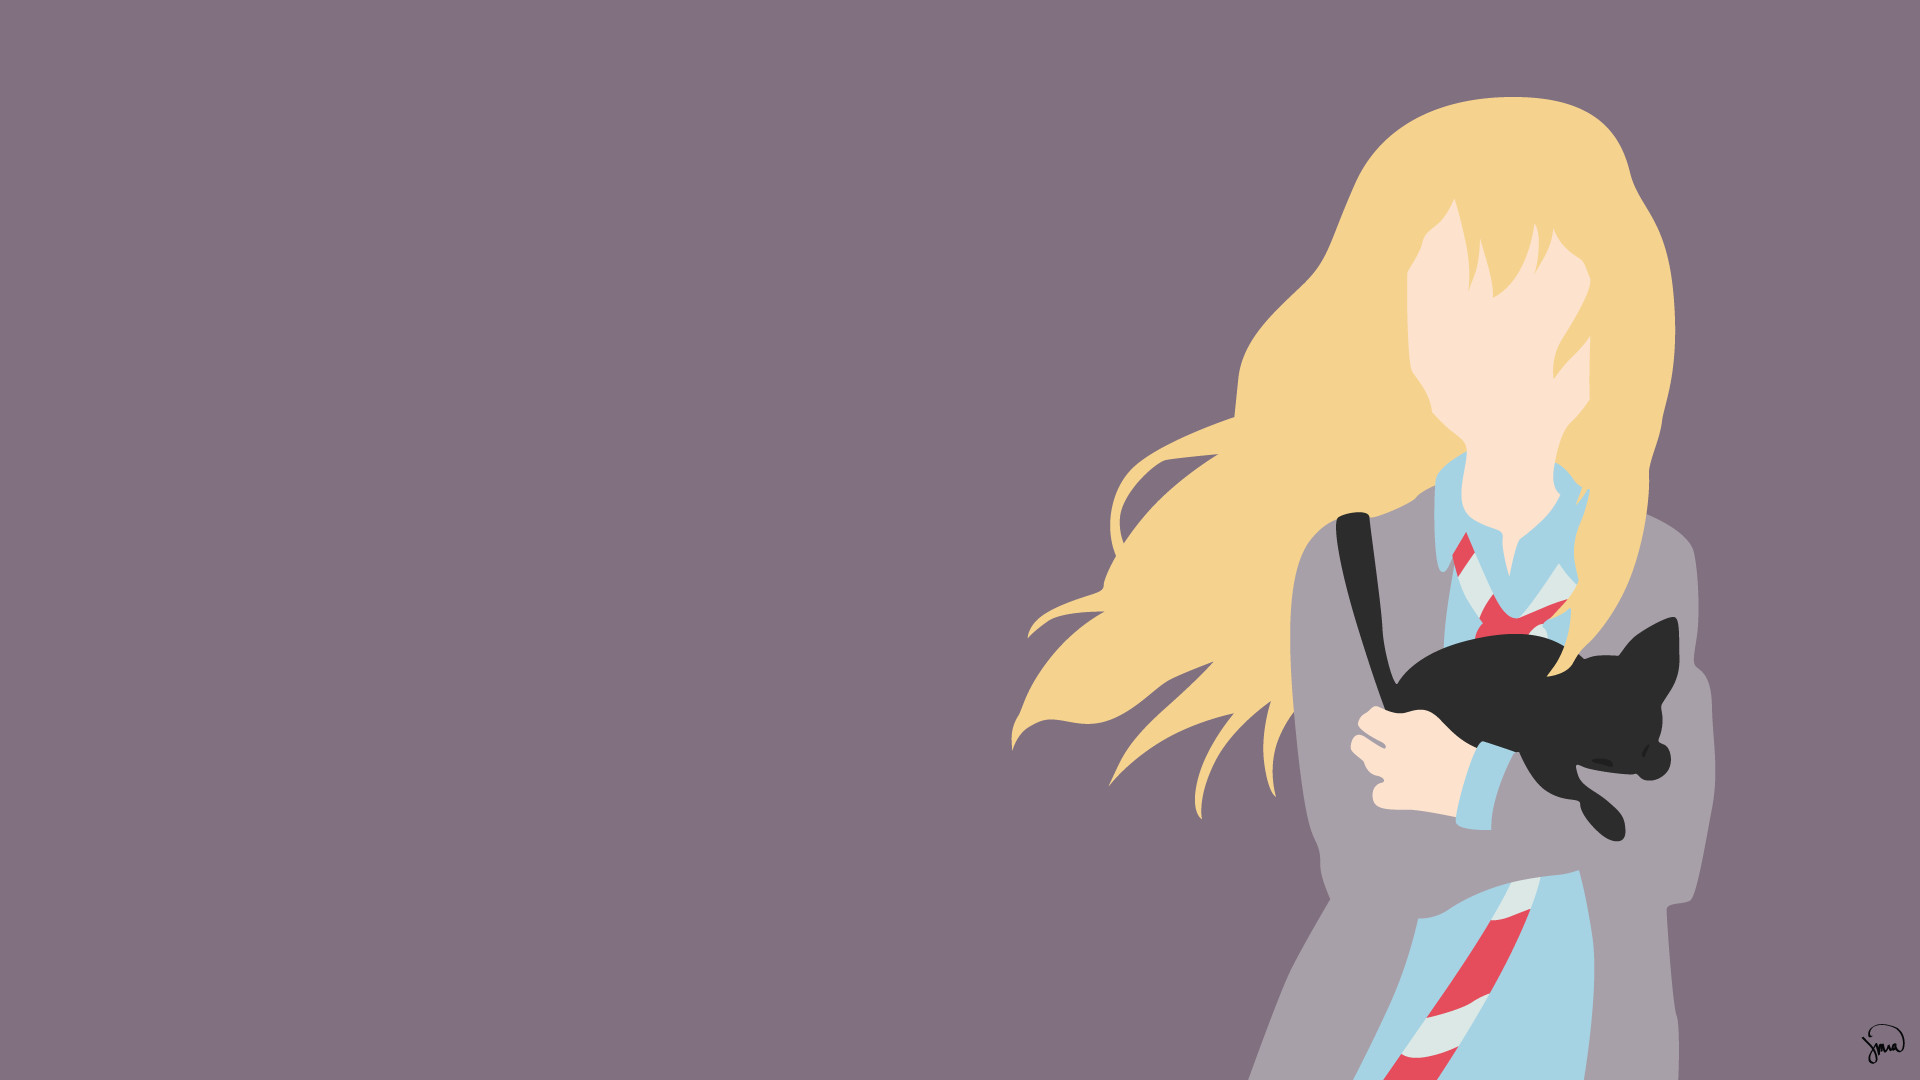 Minimalist Anime Wallpapers (79+ images)